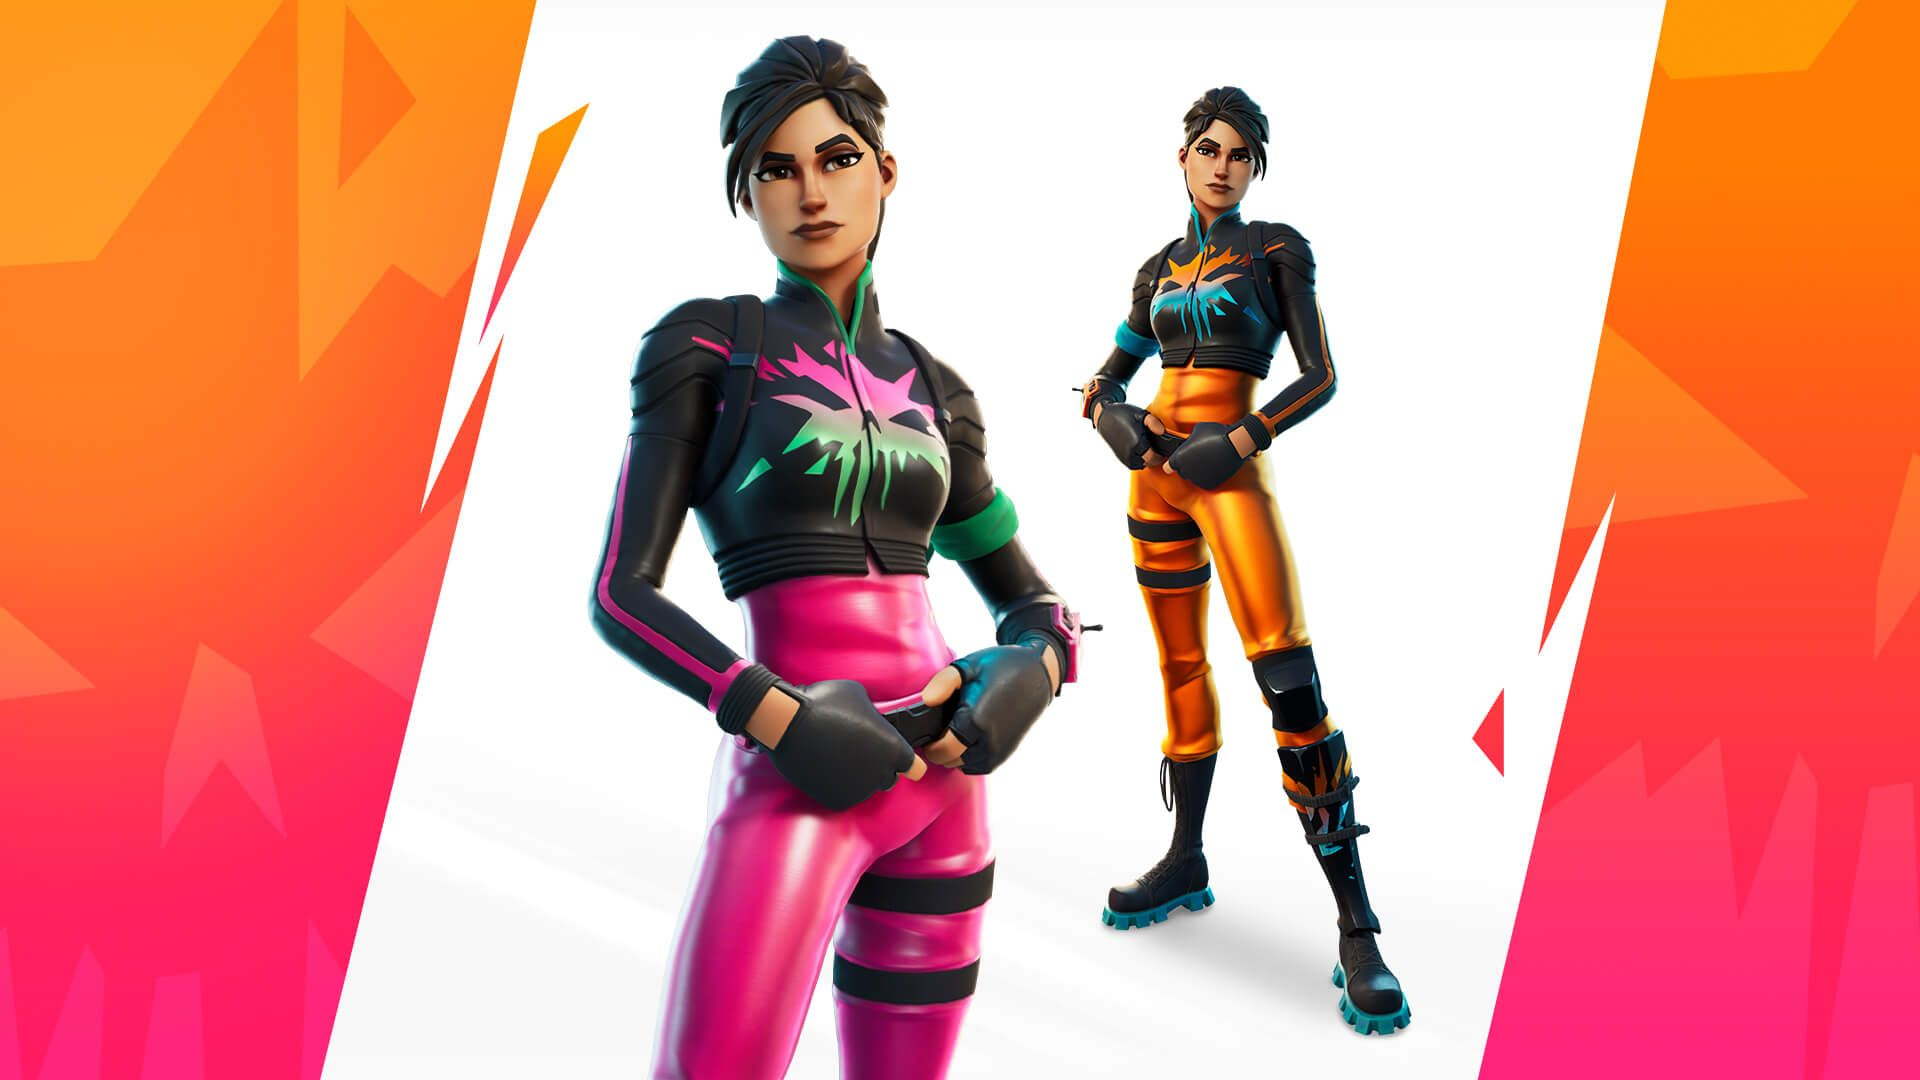 the-fortnite-trinity-challenge-will-take-spot-march-fourteen,-presented-by-three